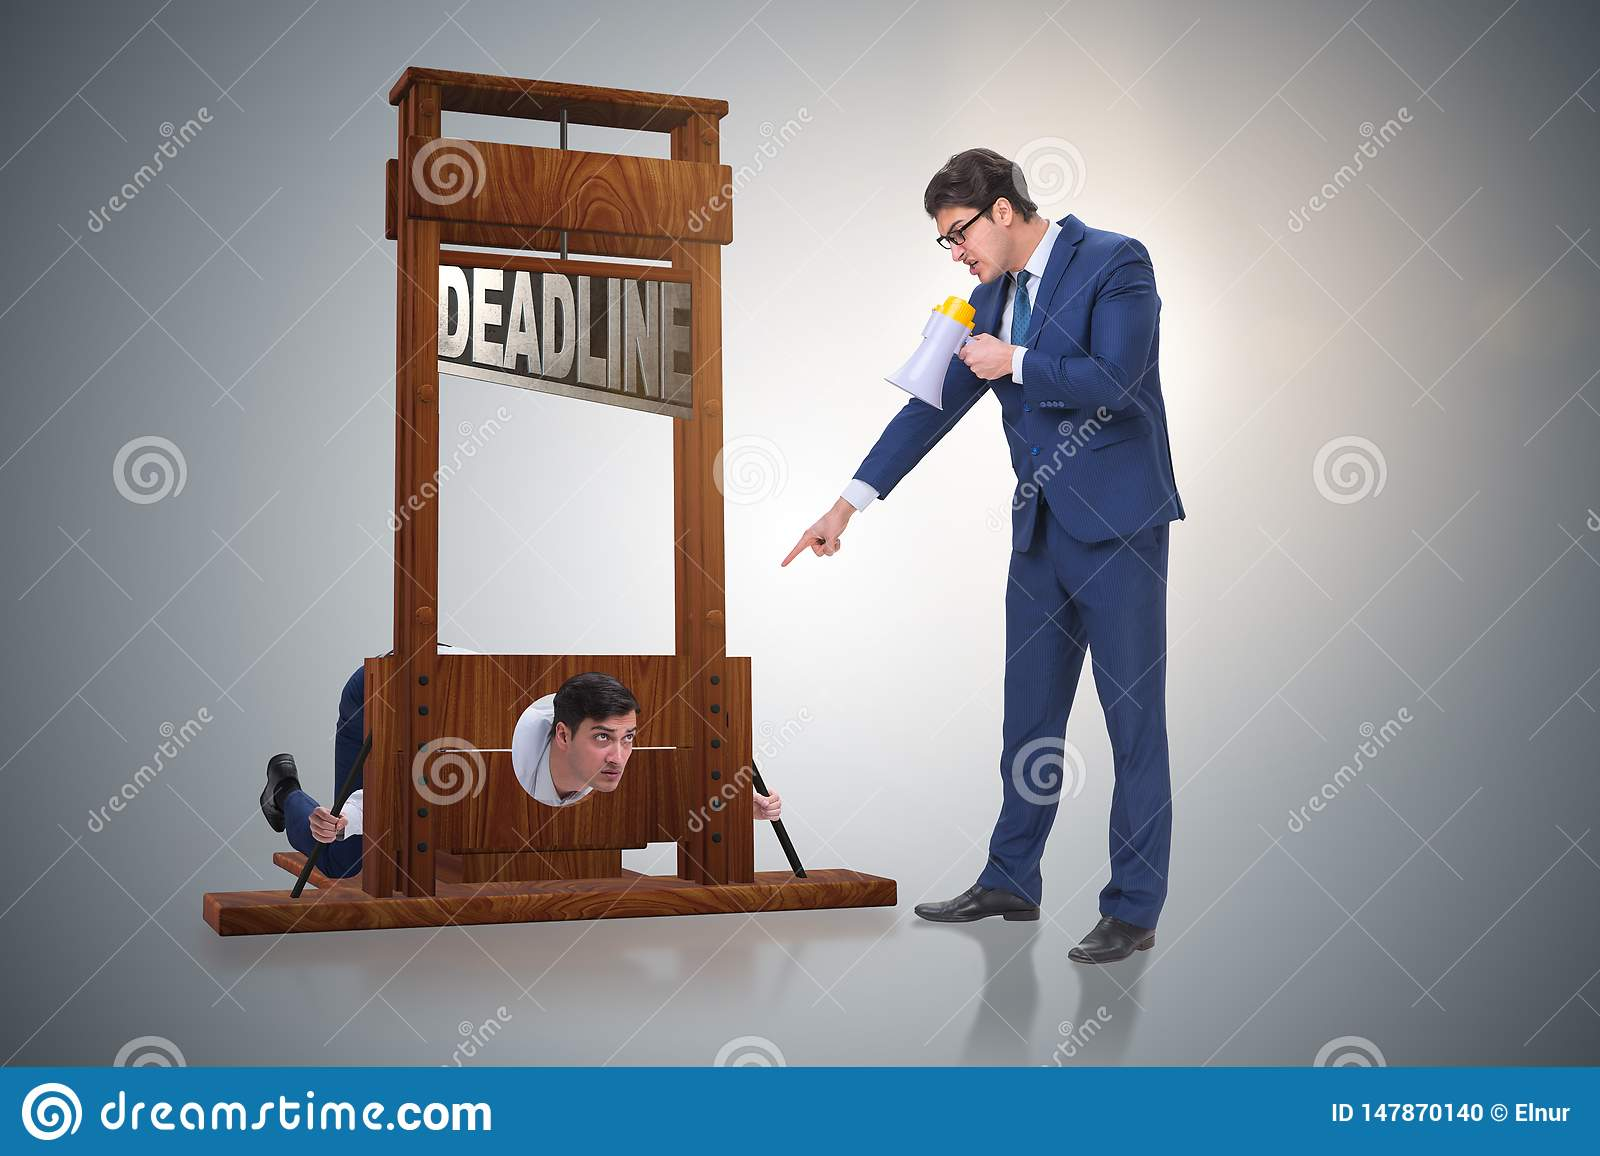 The businessman in deadline concept with guillotine